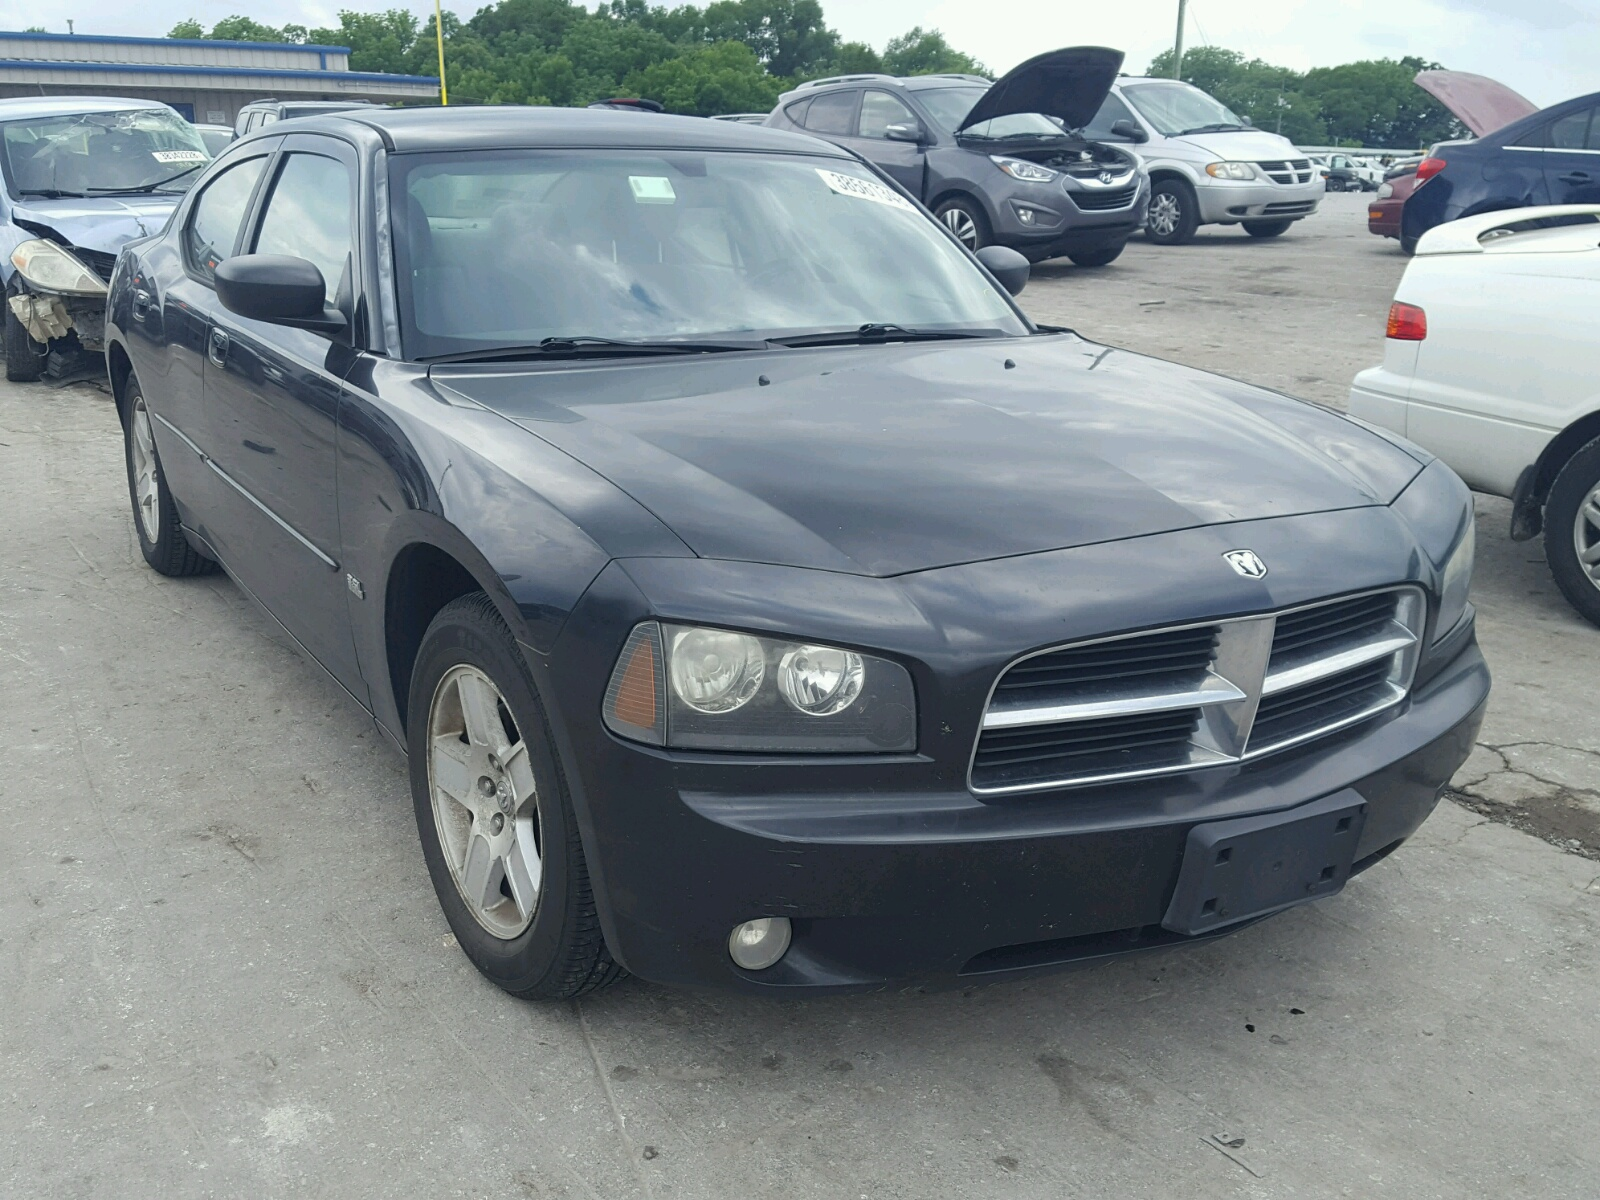 2007 Dodge Charger SE for sale at Copart Lebanon TN Lot